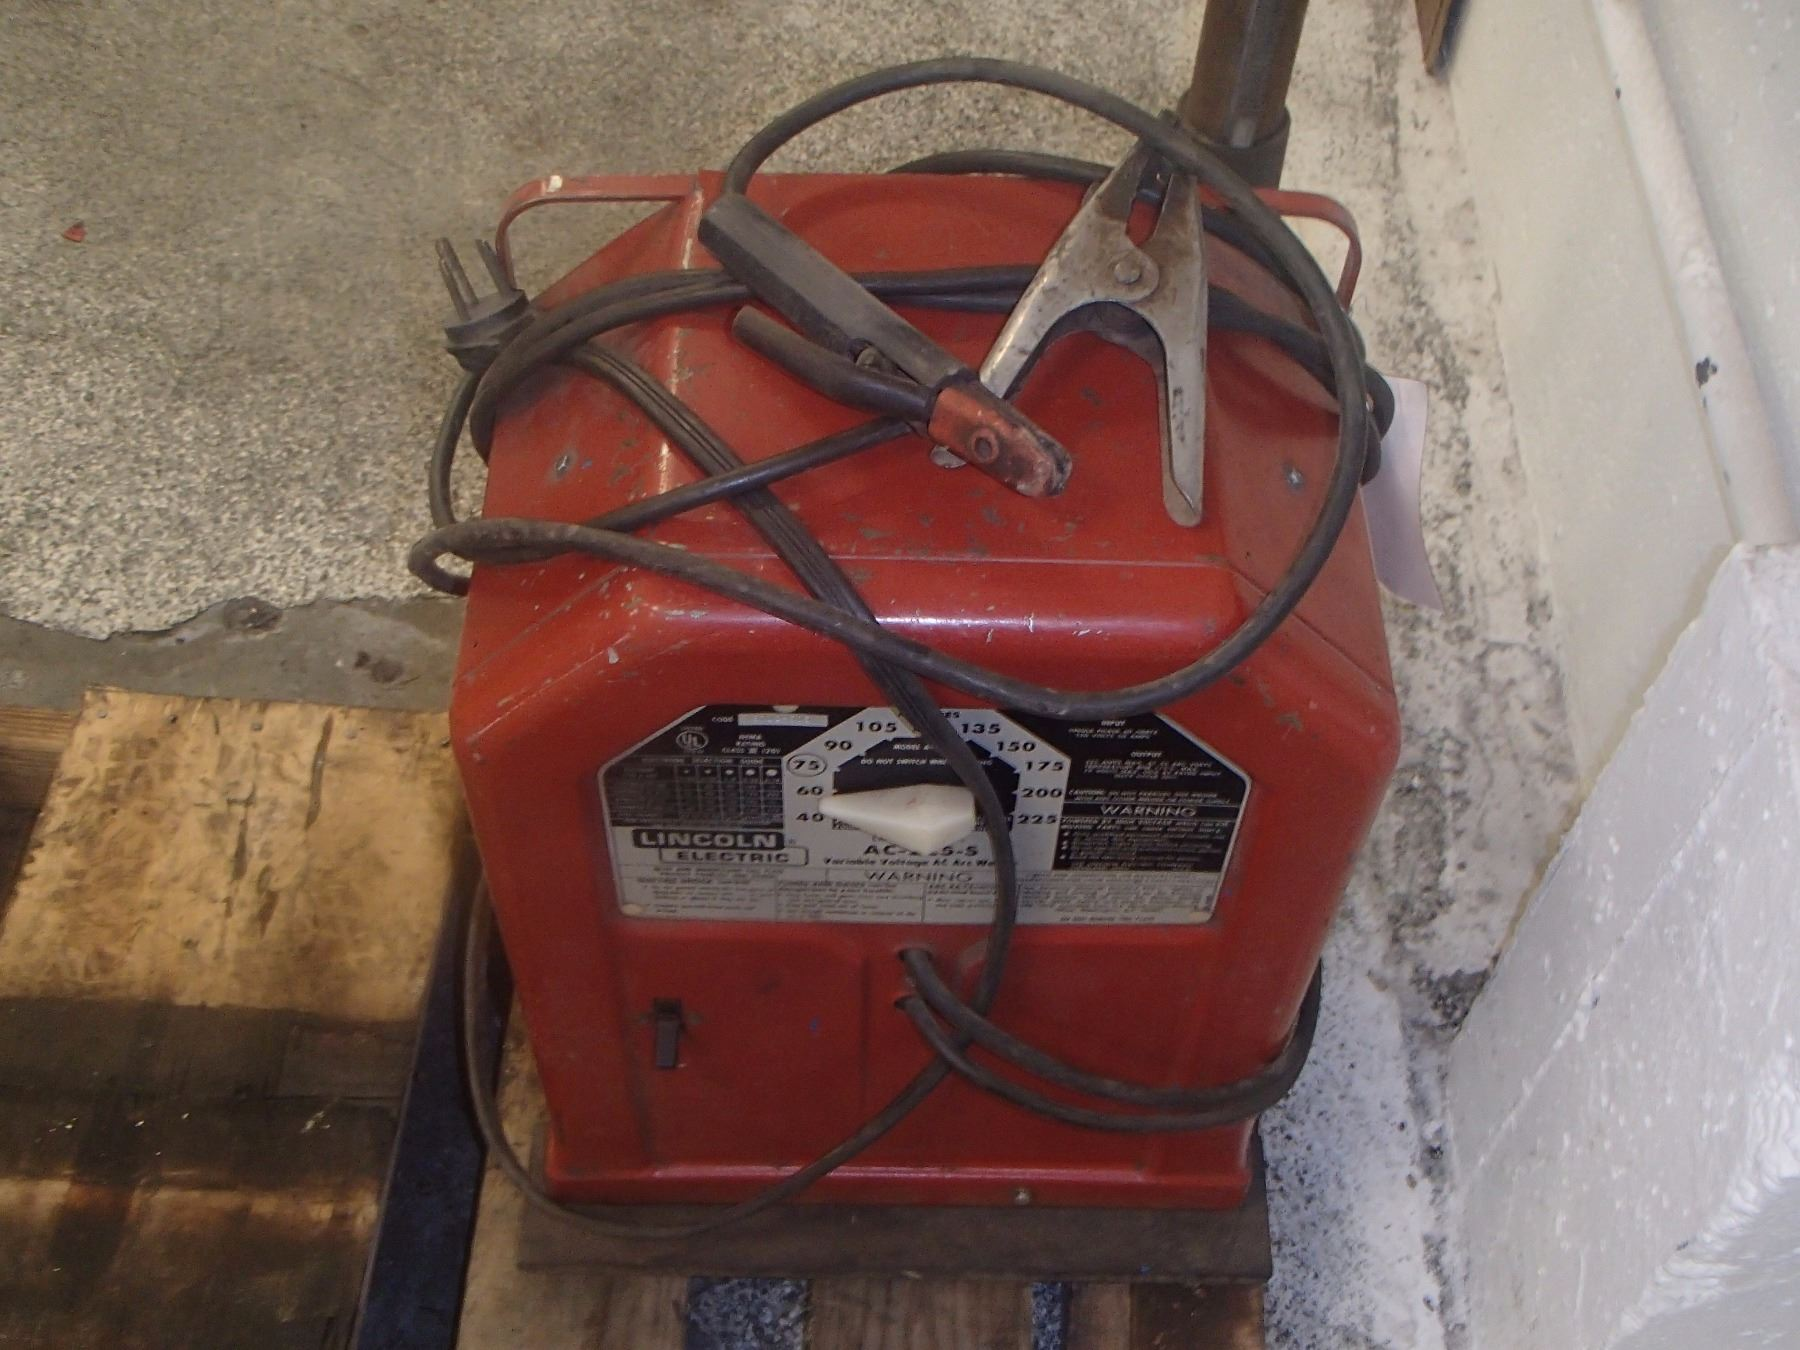 hight resolution of  image 2 lincoln electric ac 225 s variable voltage ac arc welder